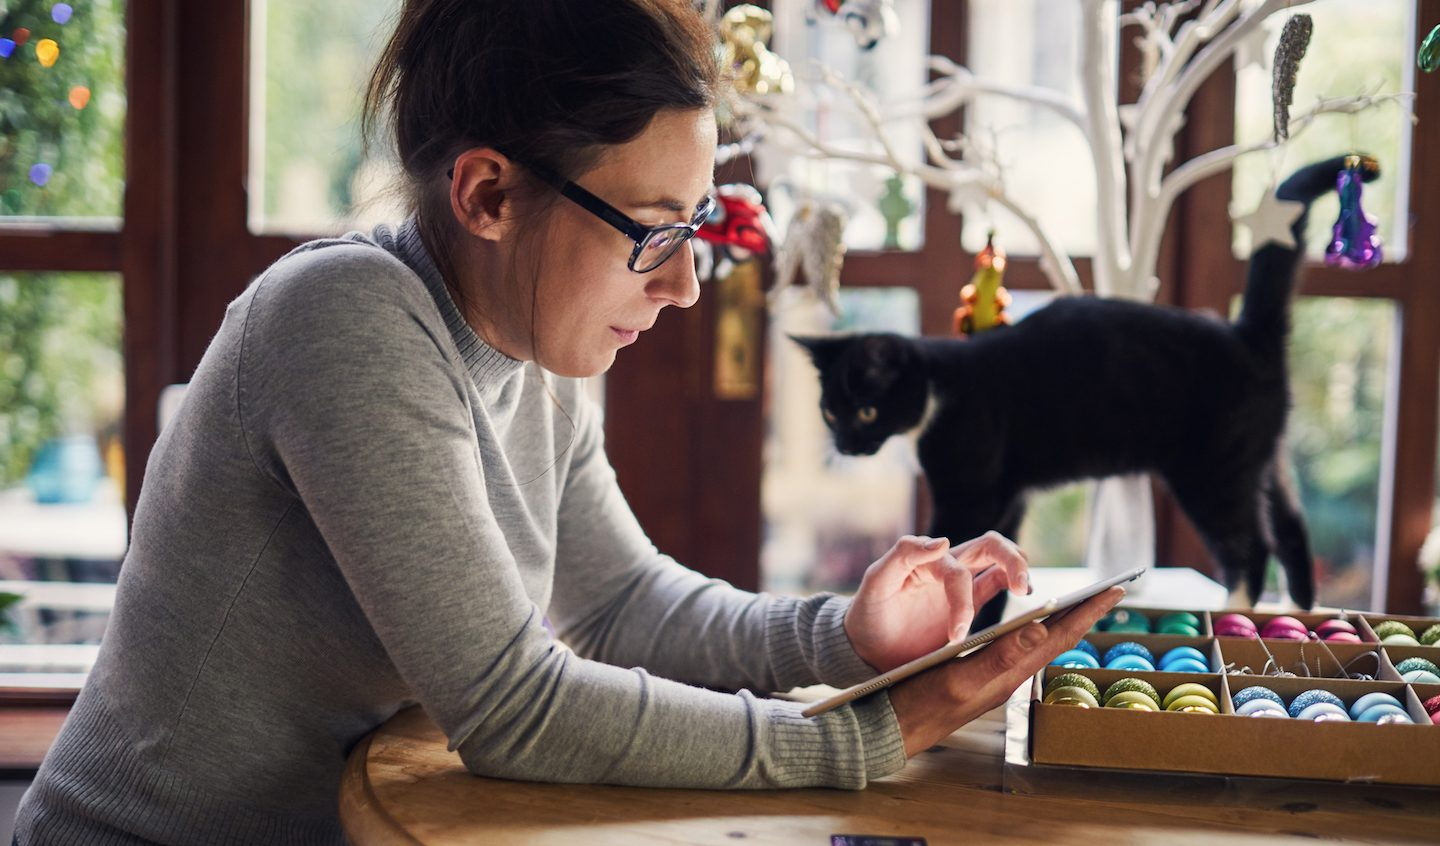 woman using Buy Now Pay Later for Christmas